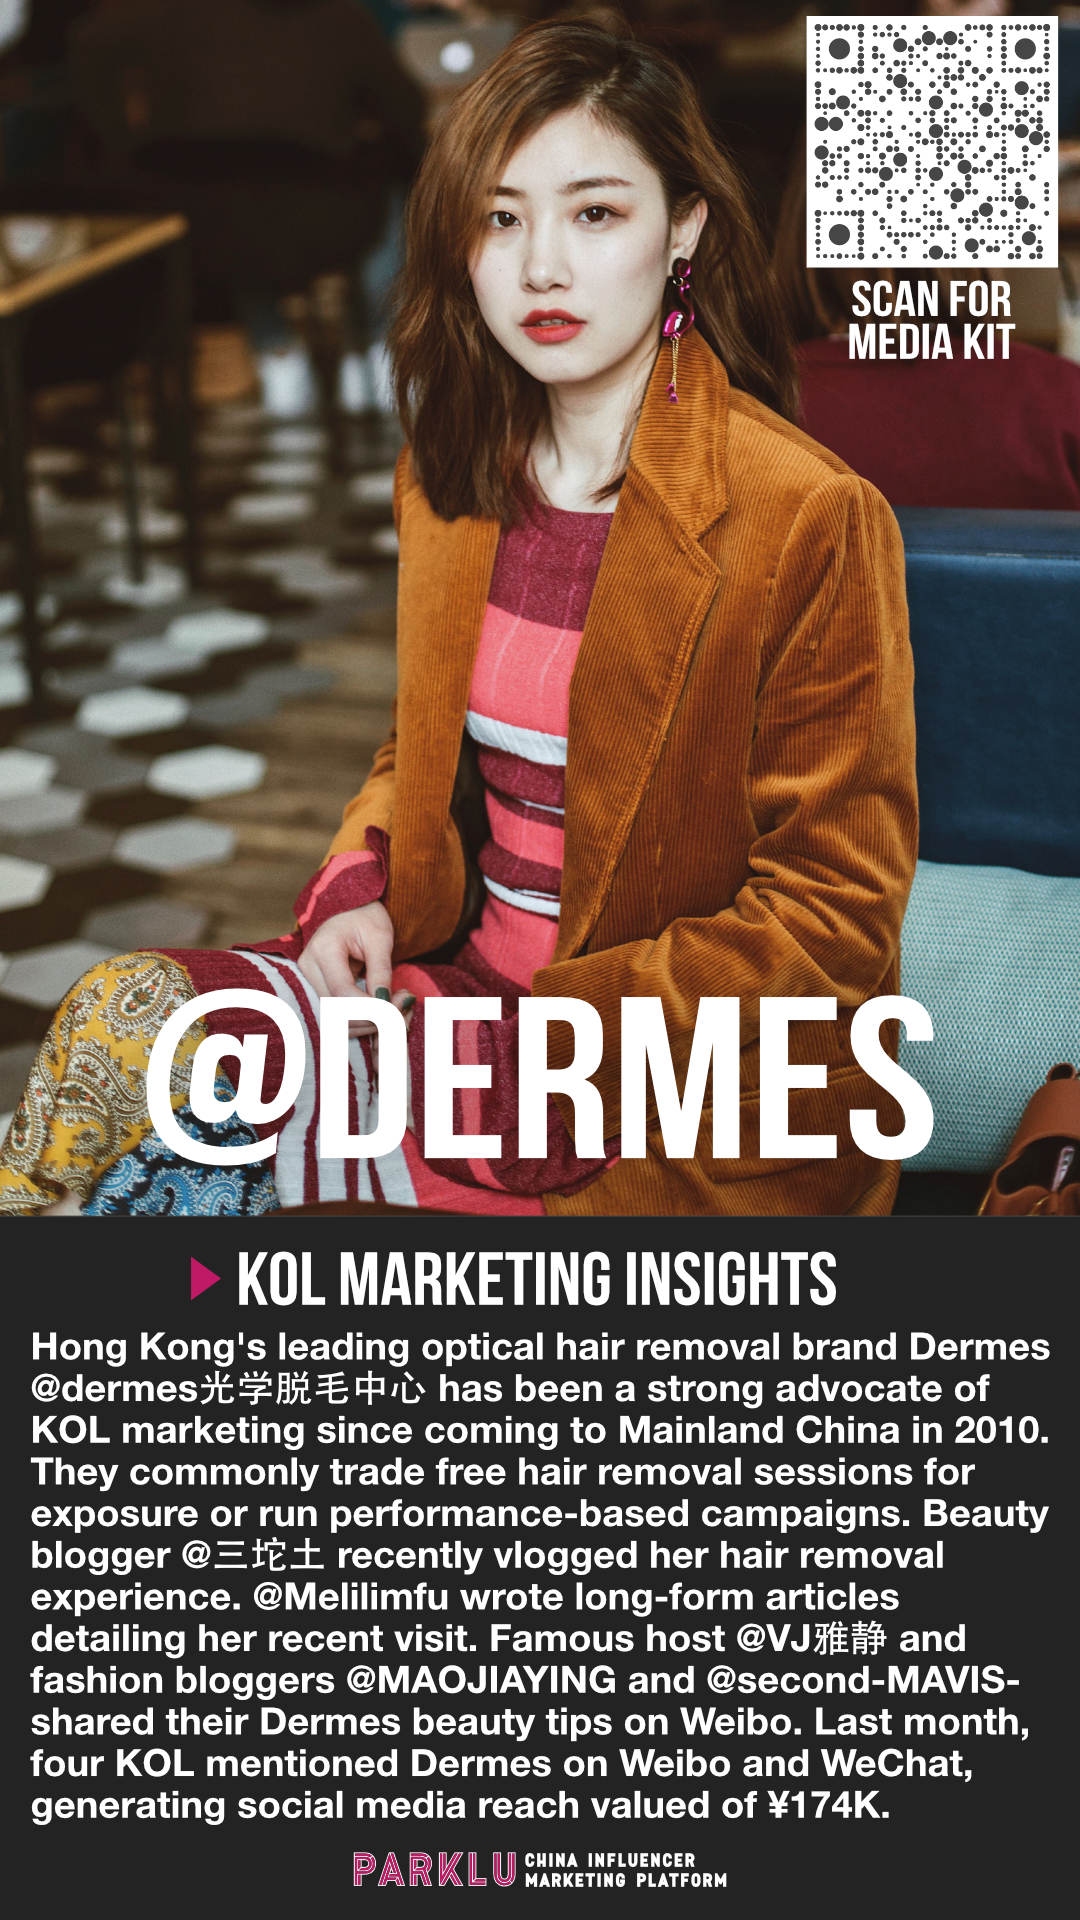 Dermes Optical Hair Removal is an Advocate of KOL Marketing